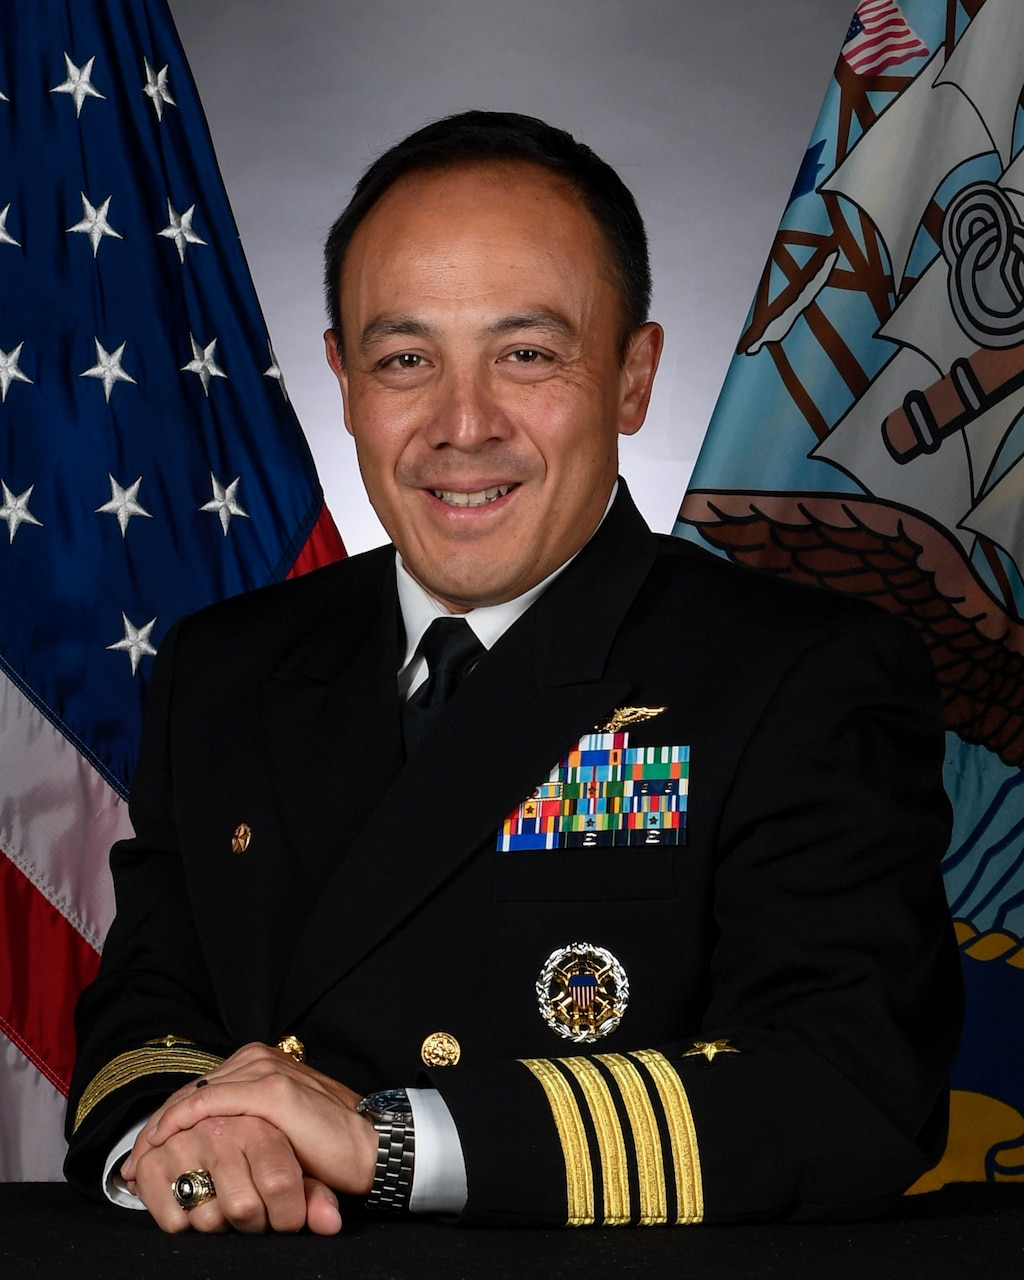 Official biography photo of Captain Fred Goldhammer, Commanding Officer, USS Ronald Reagan (CVN 76).